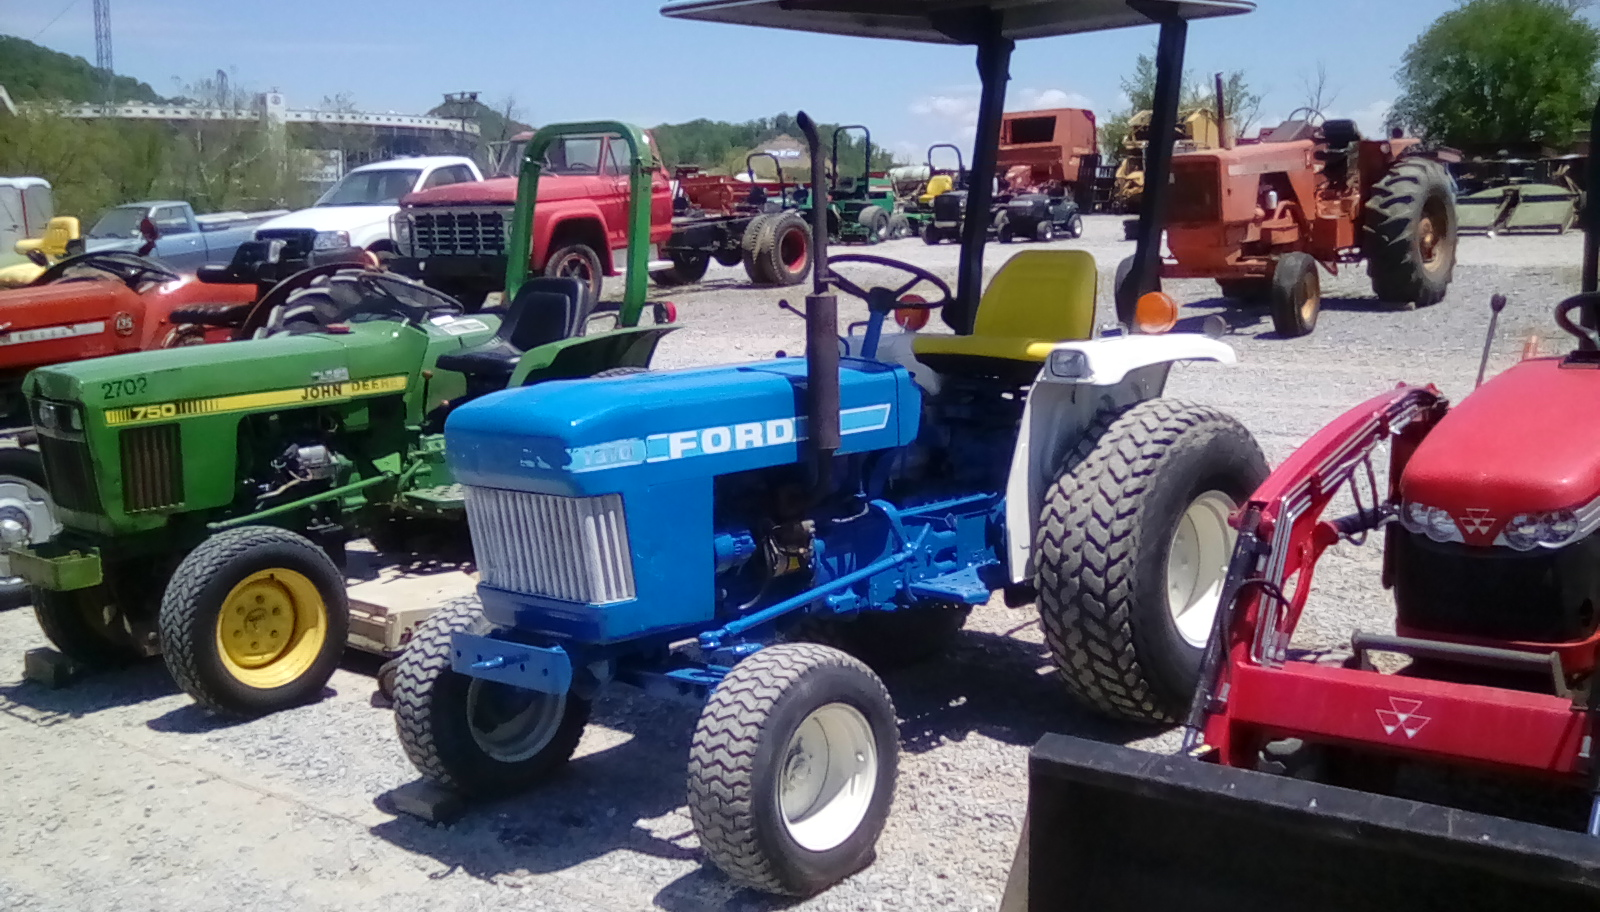 FORD 1310 TRACTOR Image